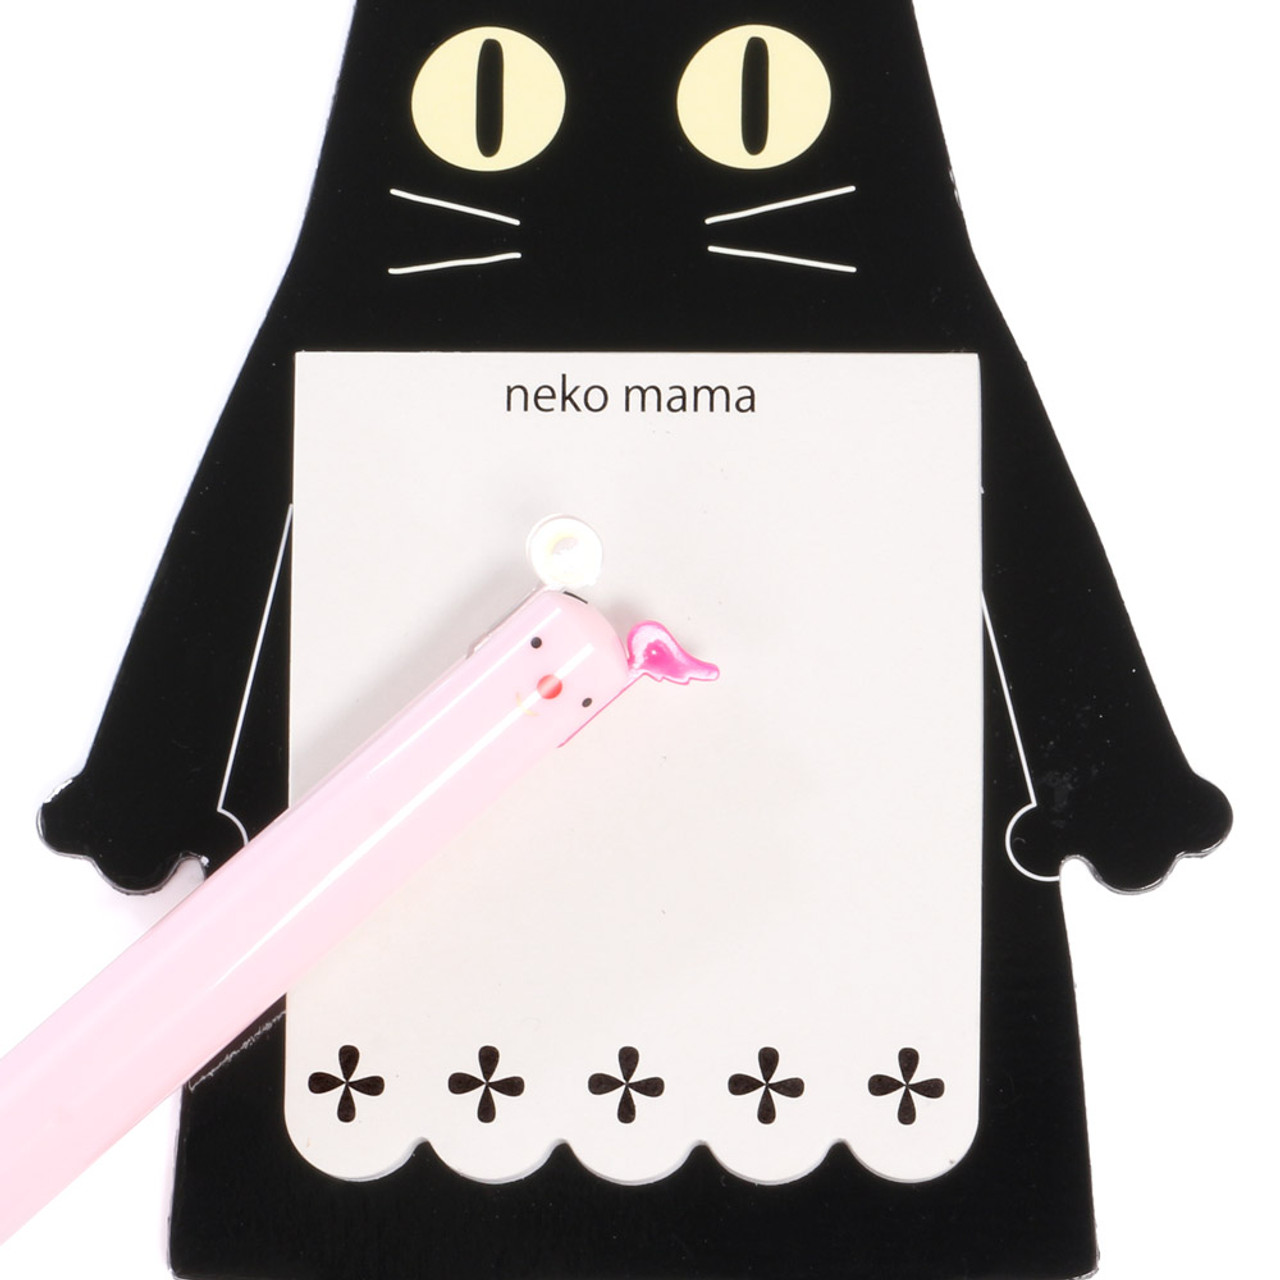 Noafamily Nekomama Black Cat Magnet Memo Pad 48 sheets ( Close-up )